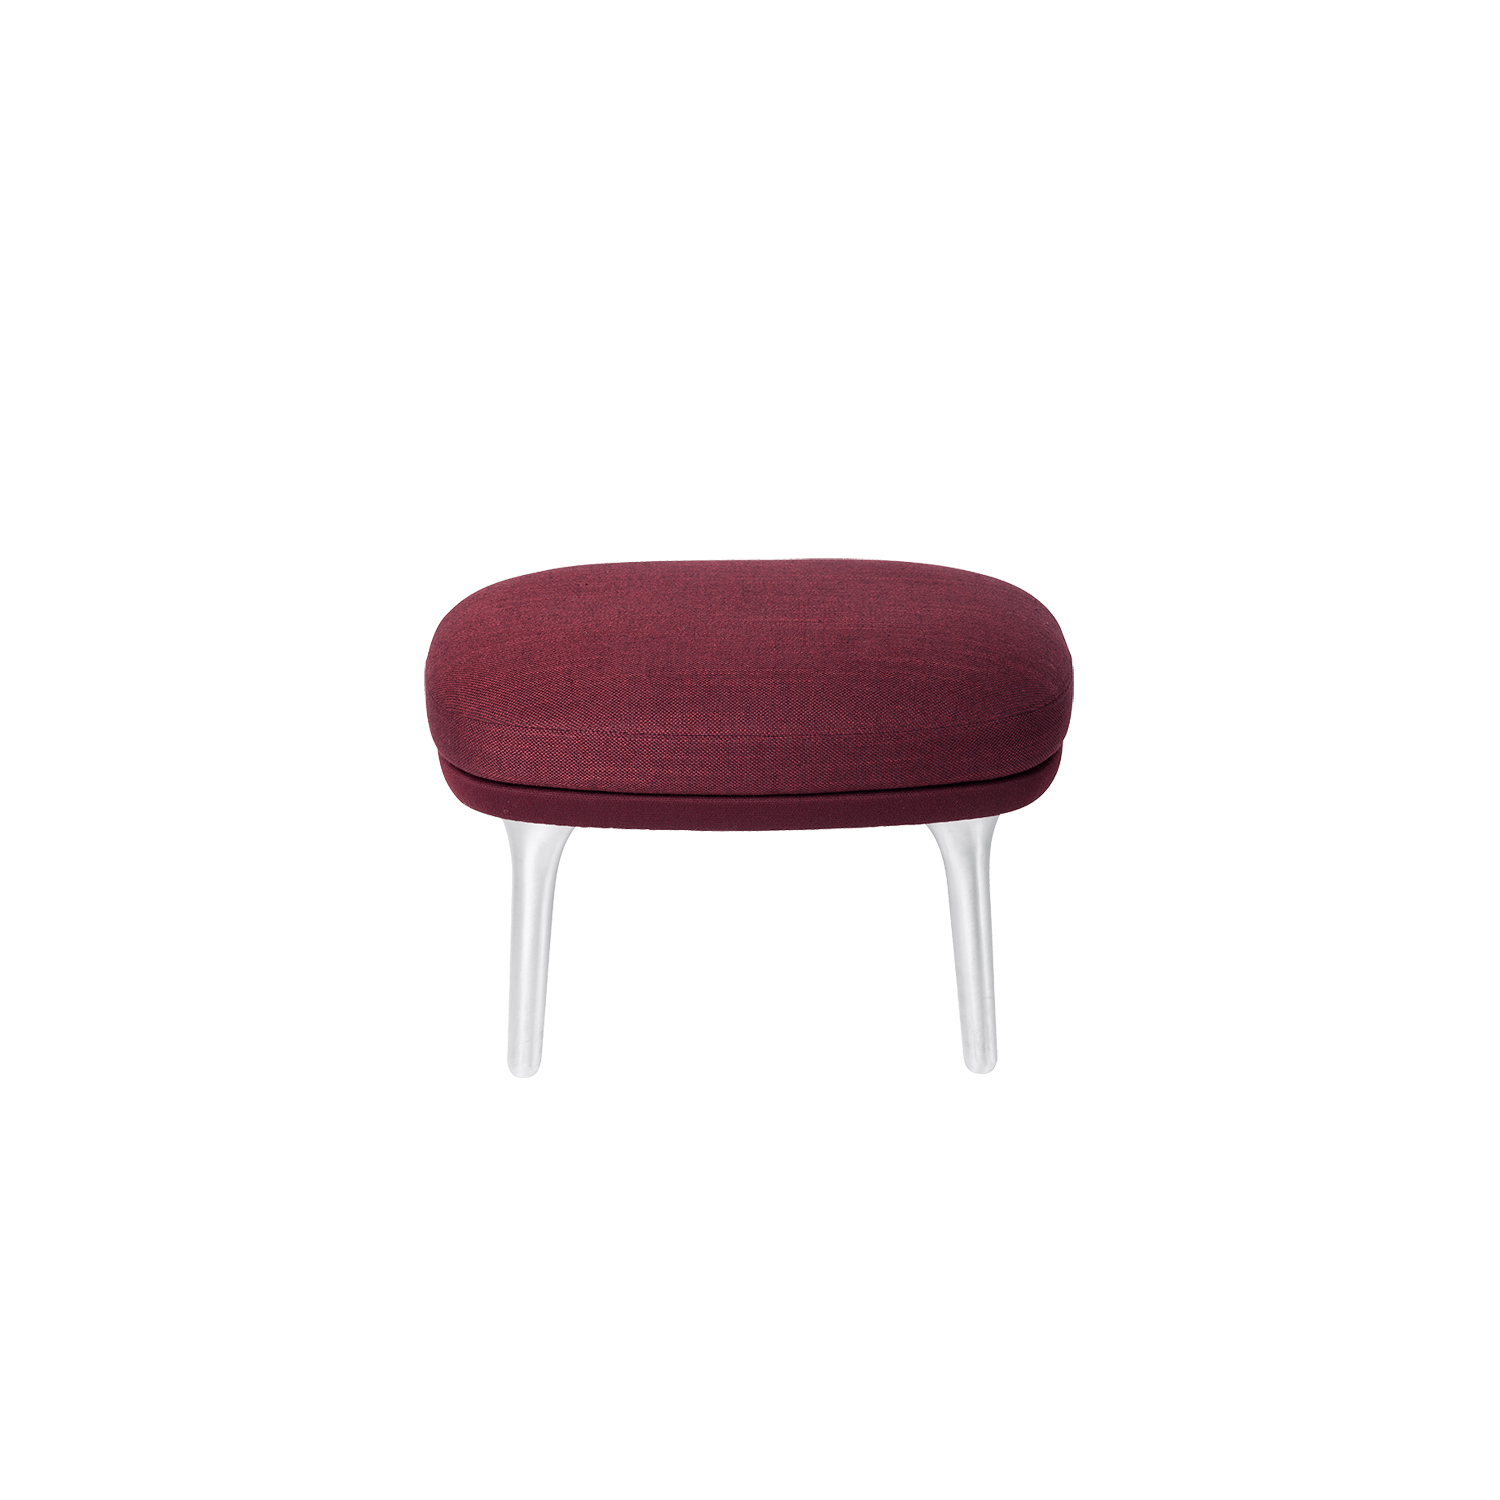 Ro Footstool - <p>Add the cherry on top for your Ro™ easy chair with a Ro™ footstool. Small, movable and multifunctional - for tired feet or today&#039;s newspaper. </p> <p>The seat cushion for the footstool is made of moulded polyurethane foam to achieve the right form and comfort and comes fully upholstered in fabric or leather. The footstool matches both the Ro and the Fri lounge chairs.</p> <p>The base comes with four legs made of brushed aluminium or solid oak. Each leg has nylon glides suitable for a majority of floors.</p> <p>A range of materials, colours and finishes are available in a number of combinations. Prices may vary. Please enquire for full details.</p>    Matter of Stuff